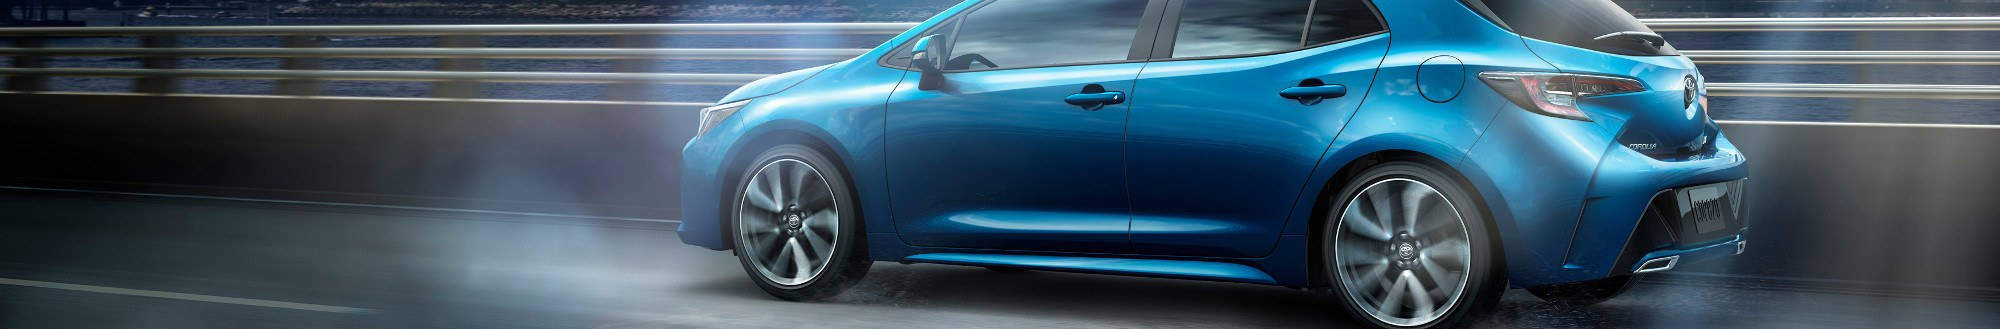 2019-Toyota-Corolla-Hatchback-Feature-Milton-Toronto-Incentives